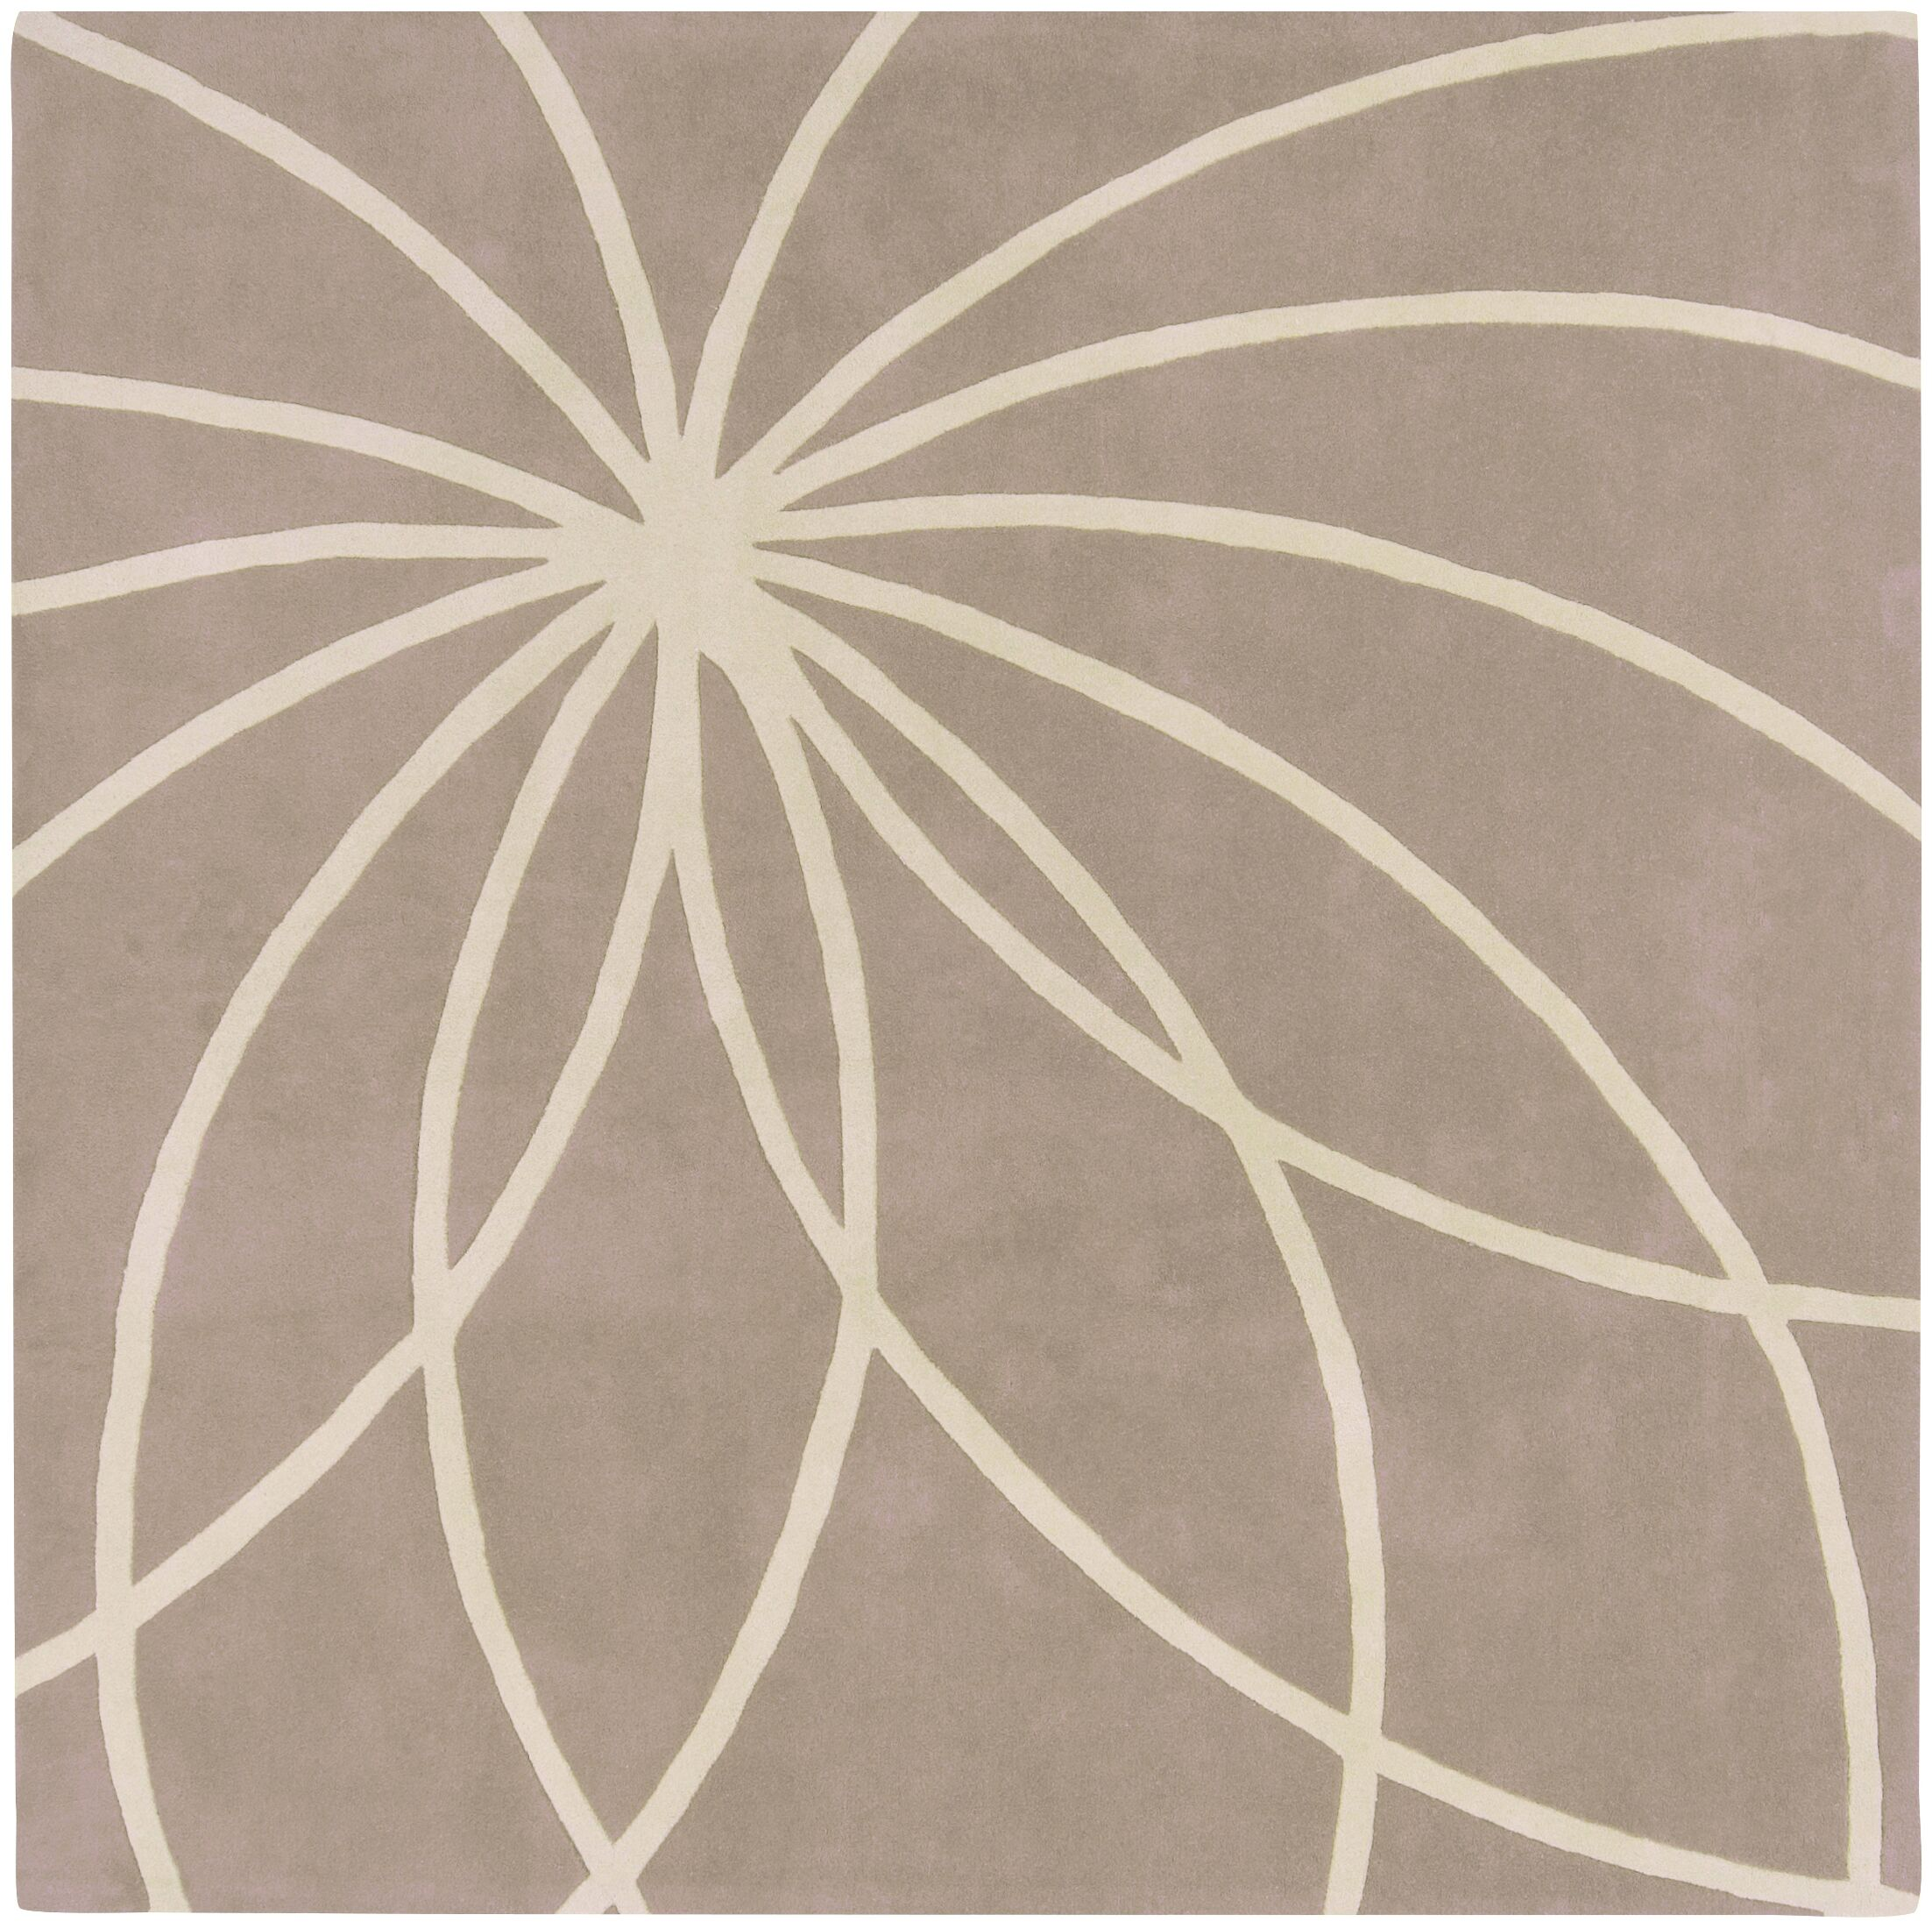 Carnahan Hand-Tufted Wool Khaki/Cream Area Rug Rug Size: Square 8'